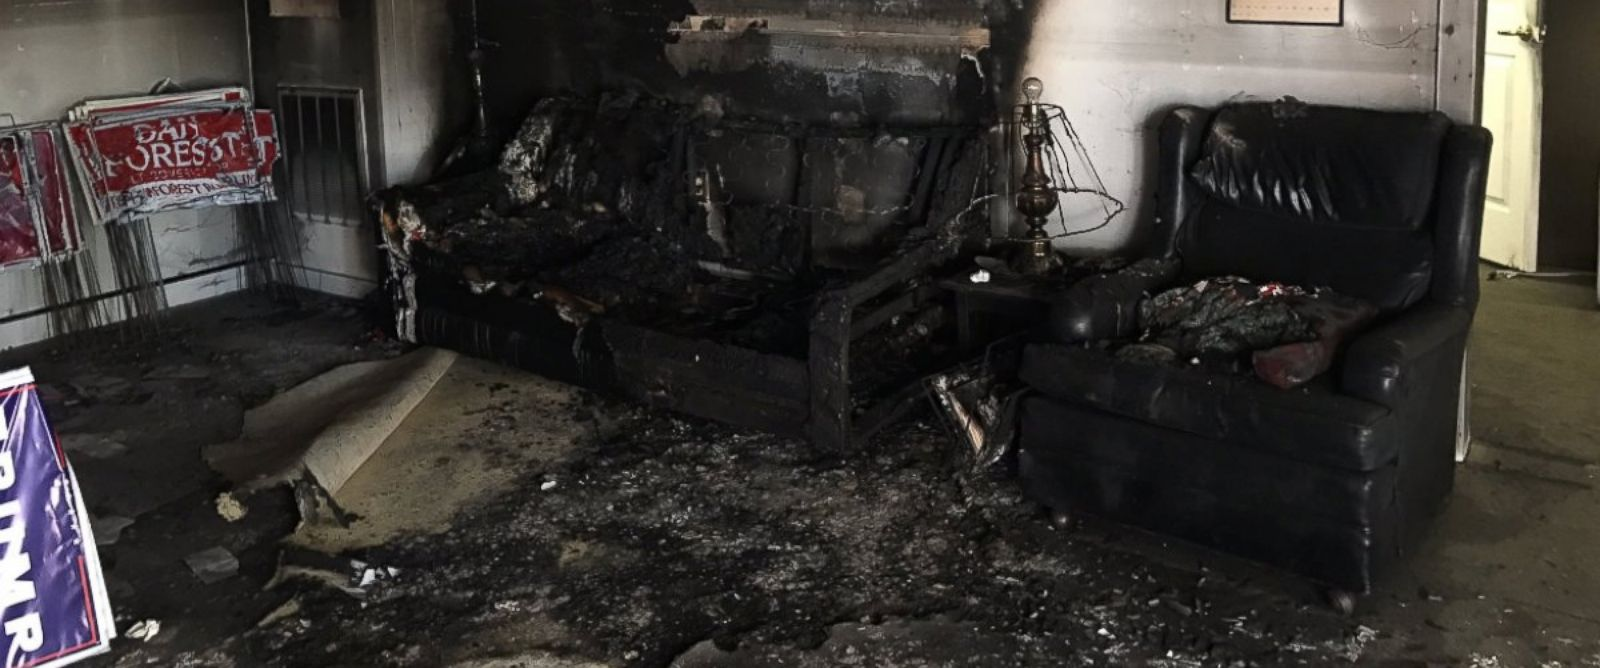 PHOTO: A photo released by the North Carolina GOP saying their office in Hillsborough was firebombed, Oct. 15, 2016.